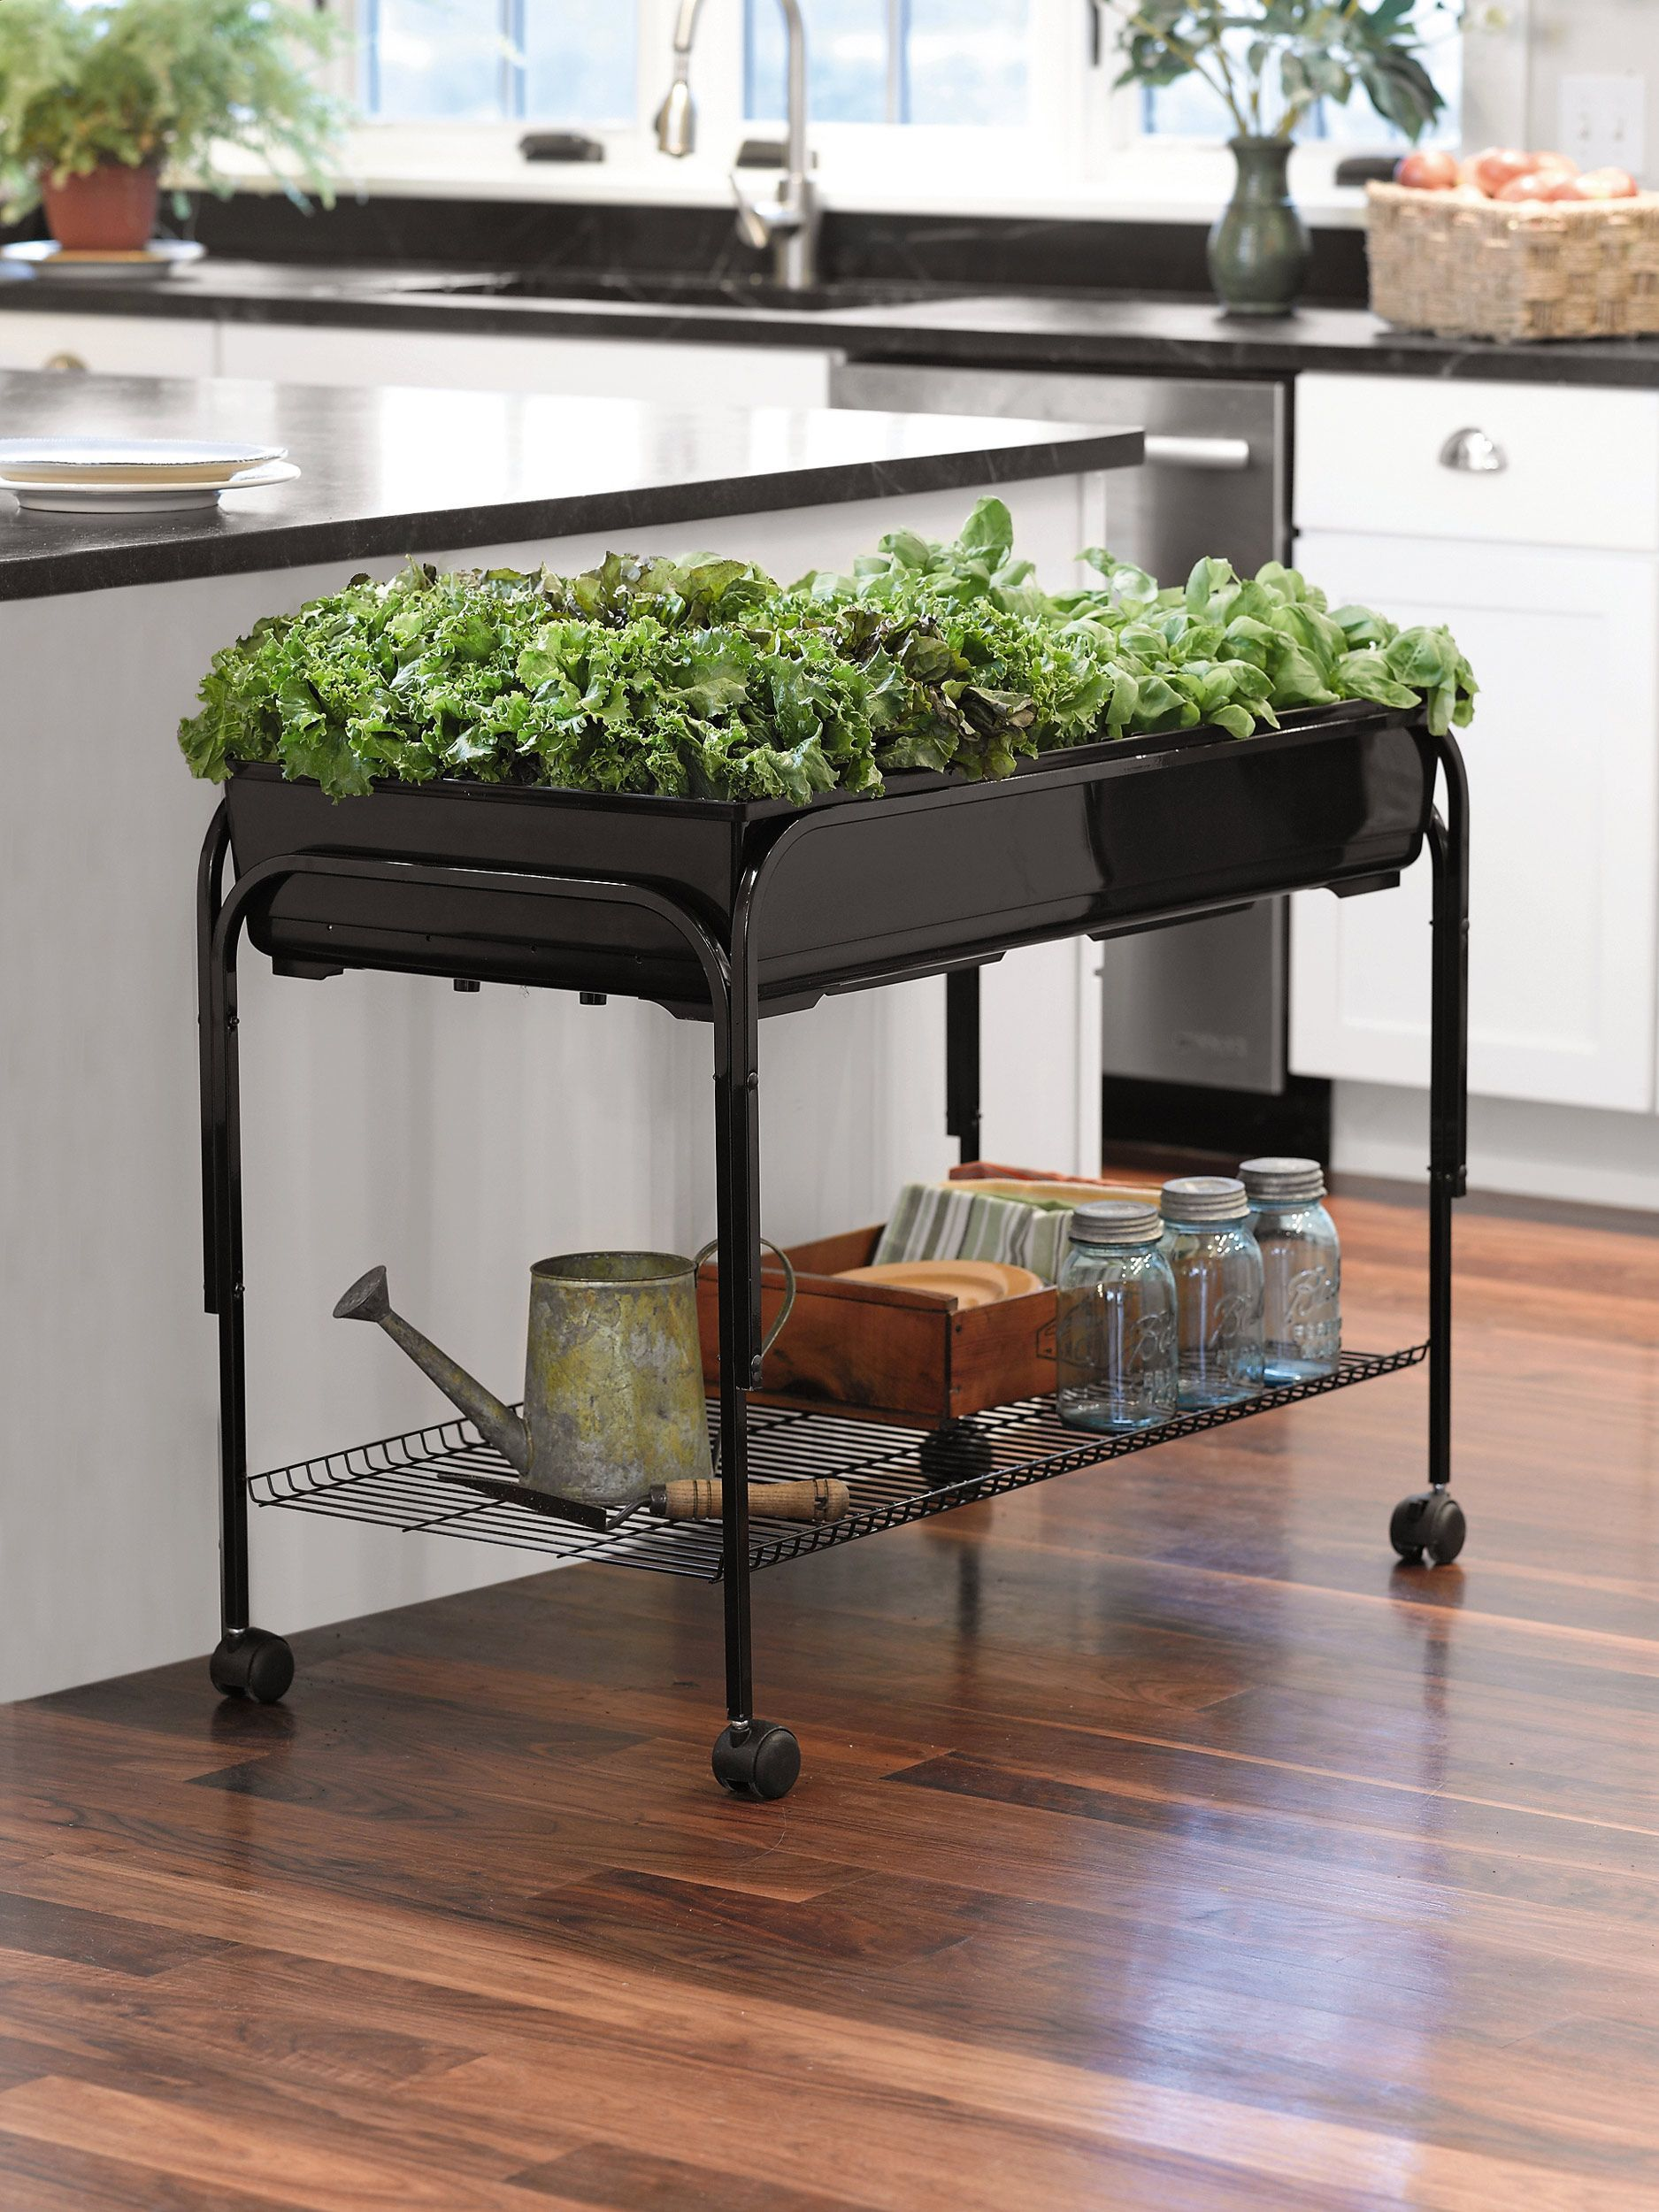 mobile grow cart keep the cart with herbs and plants outside